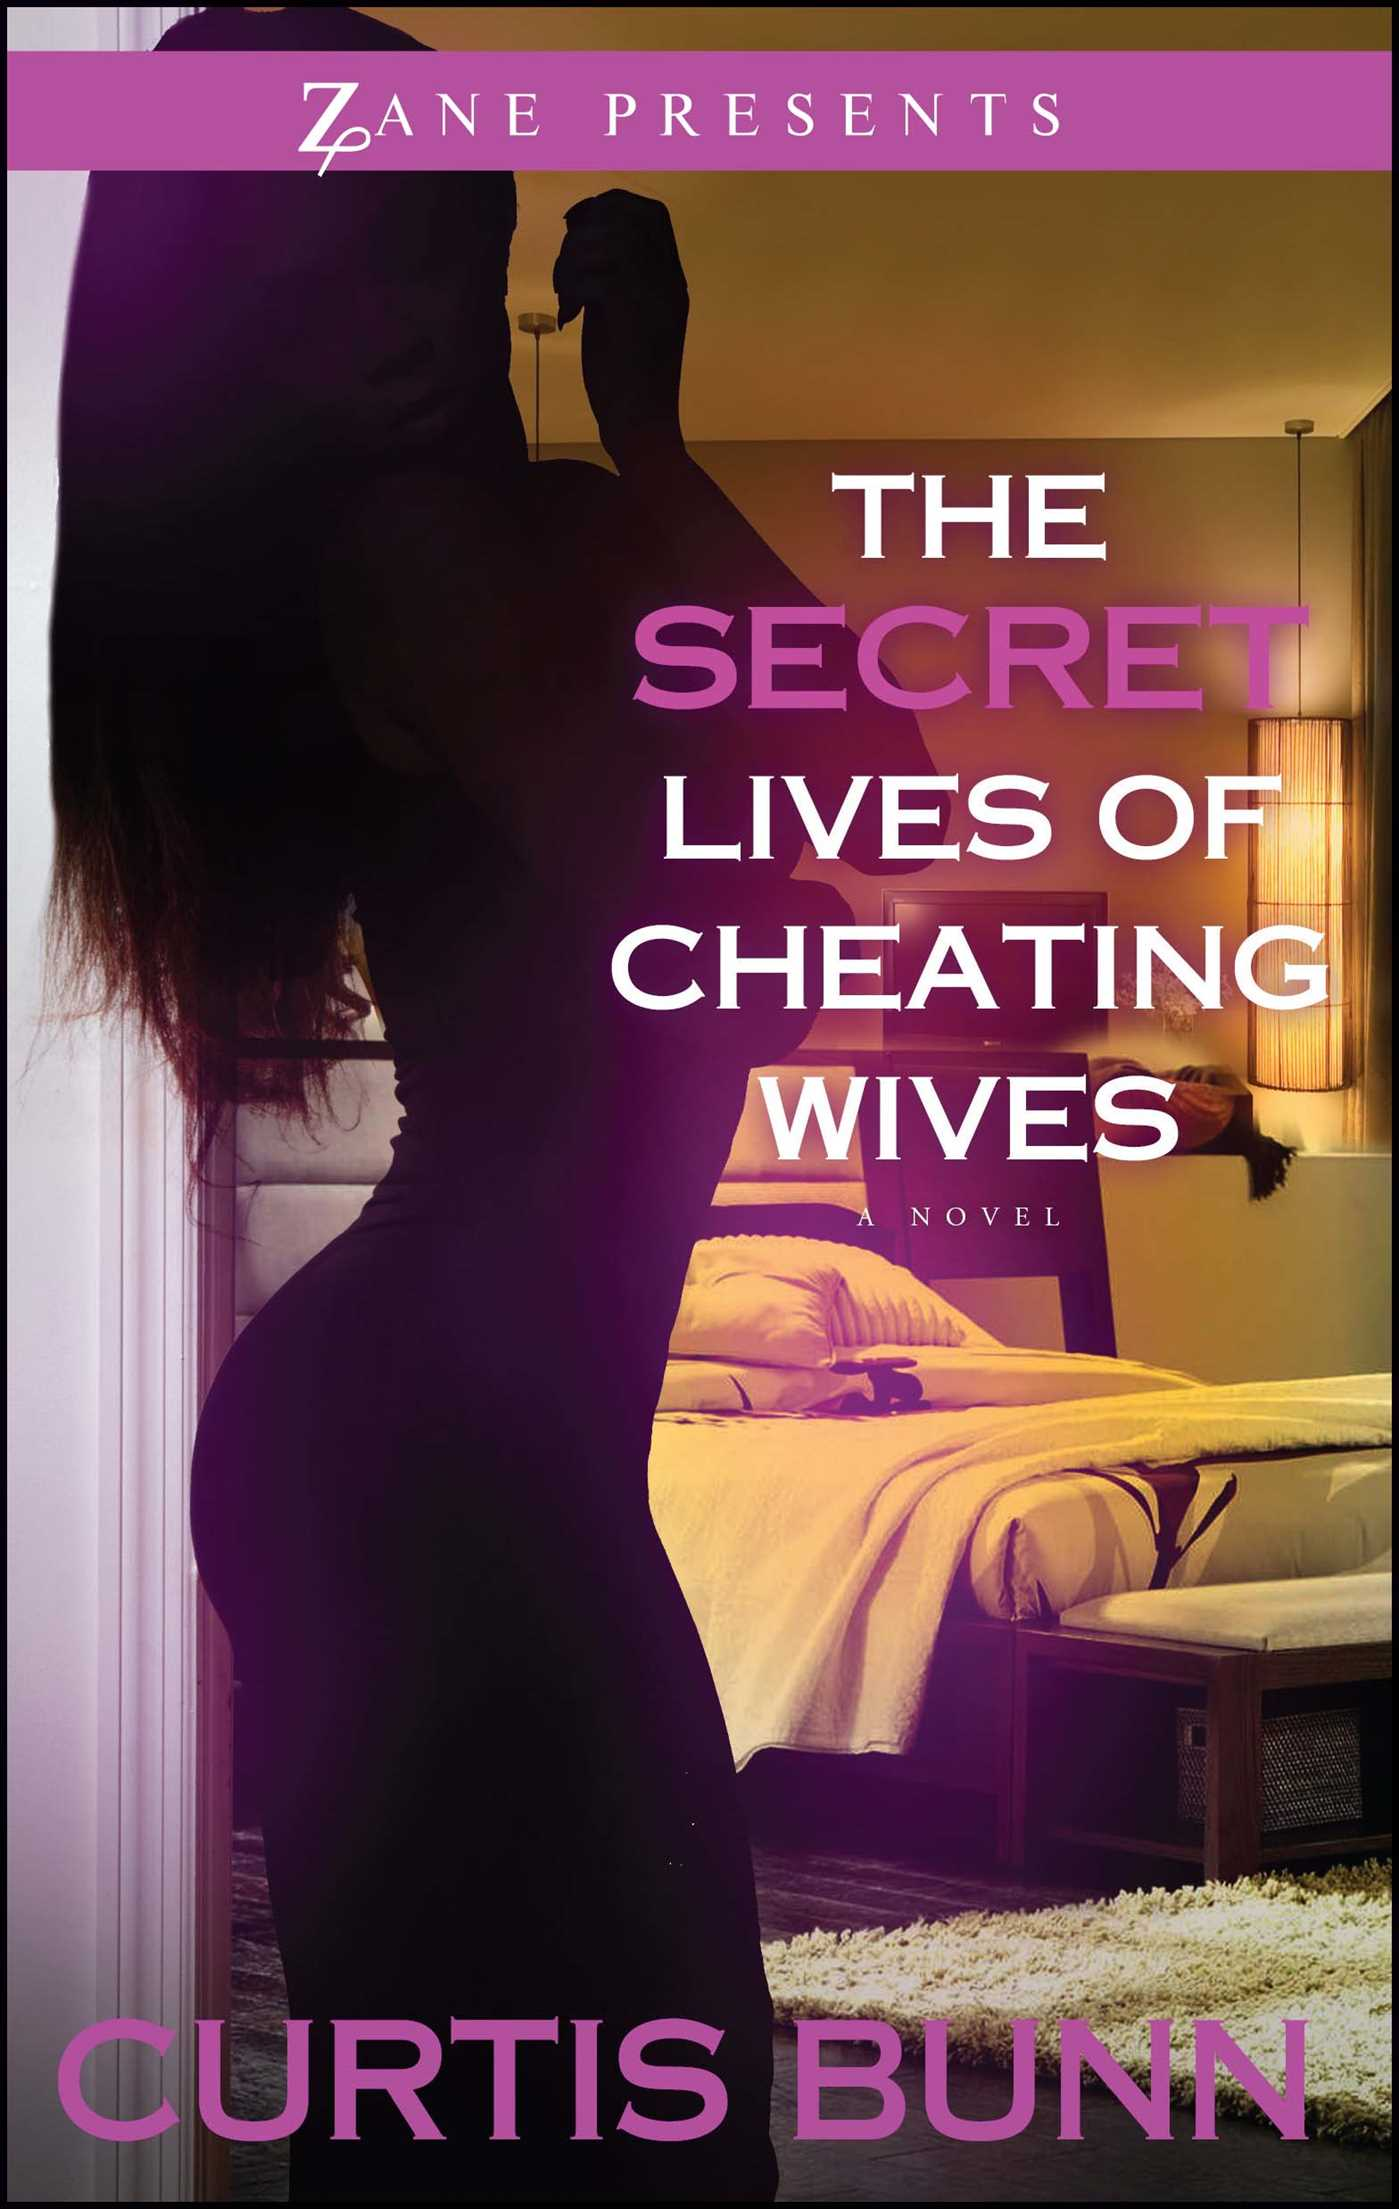 Secret lives of cheating wives 9781593096861 hr